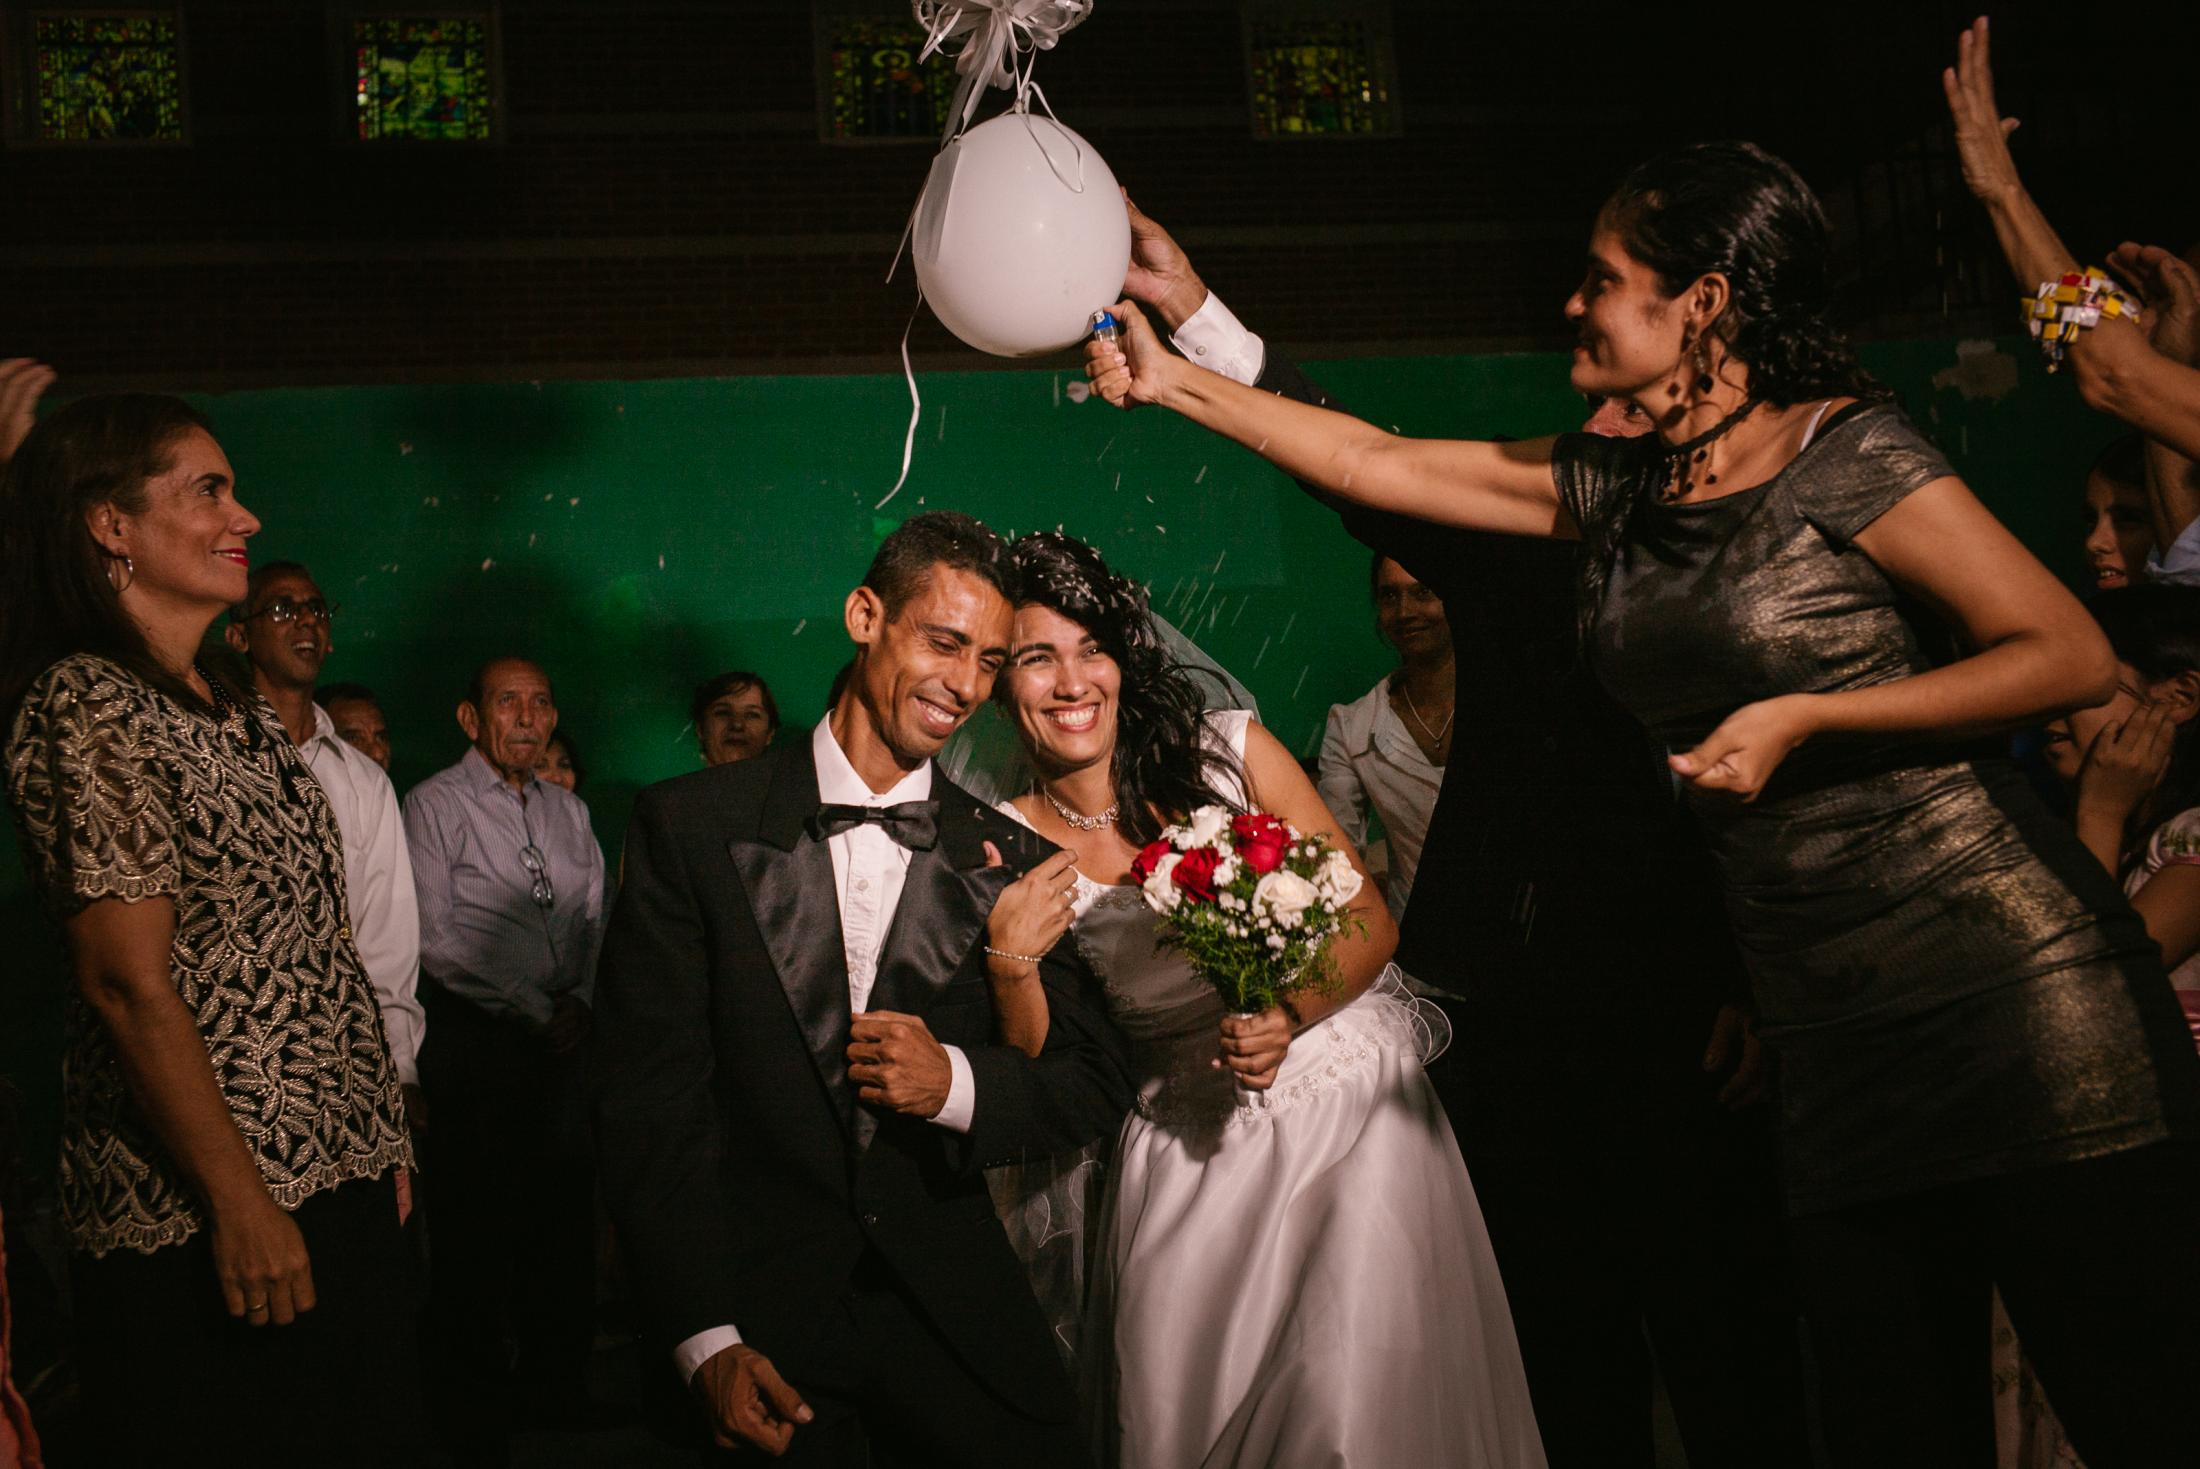 Carla Aguiar (28) and Josué Arteaga (36) are celebrating their wedding in Catia La Mar, Venezuela. 16th December 2017. The only thing that spoils the couple's happiness is that the bride's parents cannot be present at the wedding. Carla was born in Venezuela, but her parents come from the Portuguese island of Madeira. They had left their homeland in 1981 hoping for a better life in the direction of South America. But since the dictator Nicolás Maduro Venezuela plunged into a crisis, many emigrants have returned, including Carla's parents: just a few months before the wedding, in August 2017, they flew to Madeira with their two youngest children. Carla and her two older siblings Liseth and Francisco stayed behind because they could not afford the plane tickets.